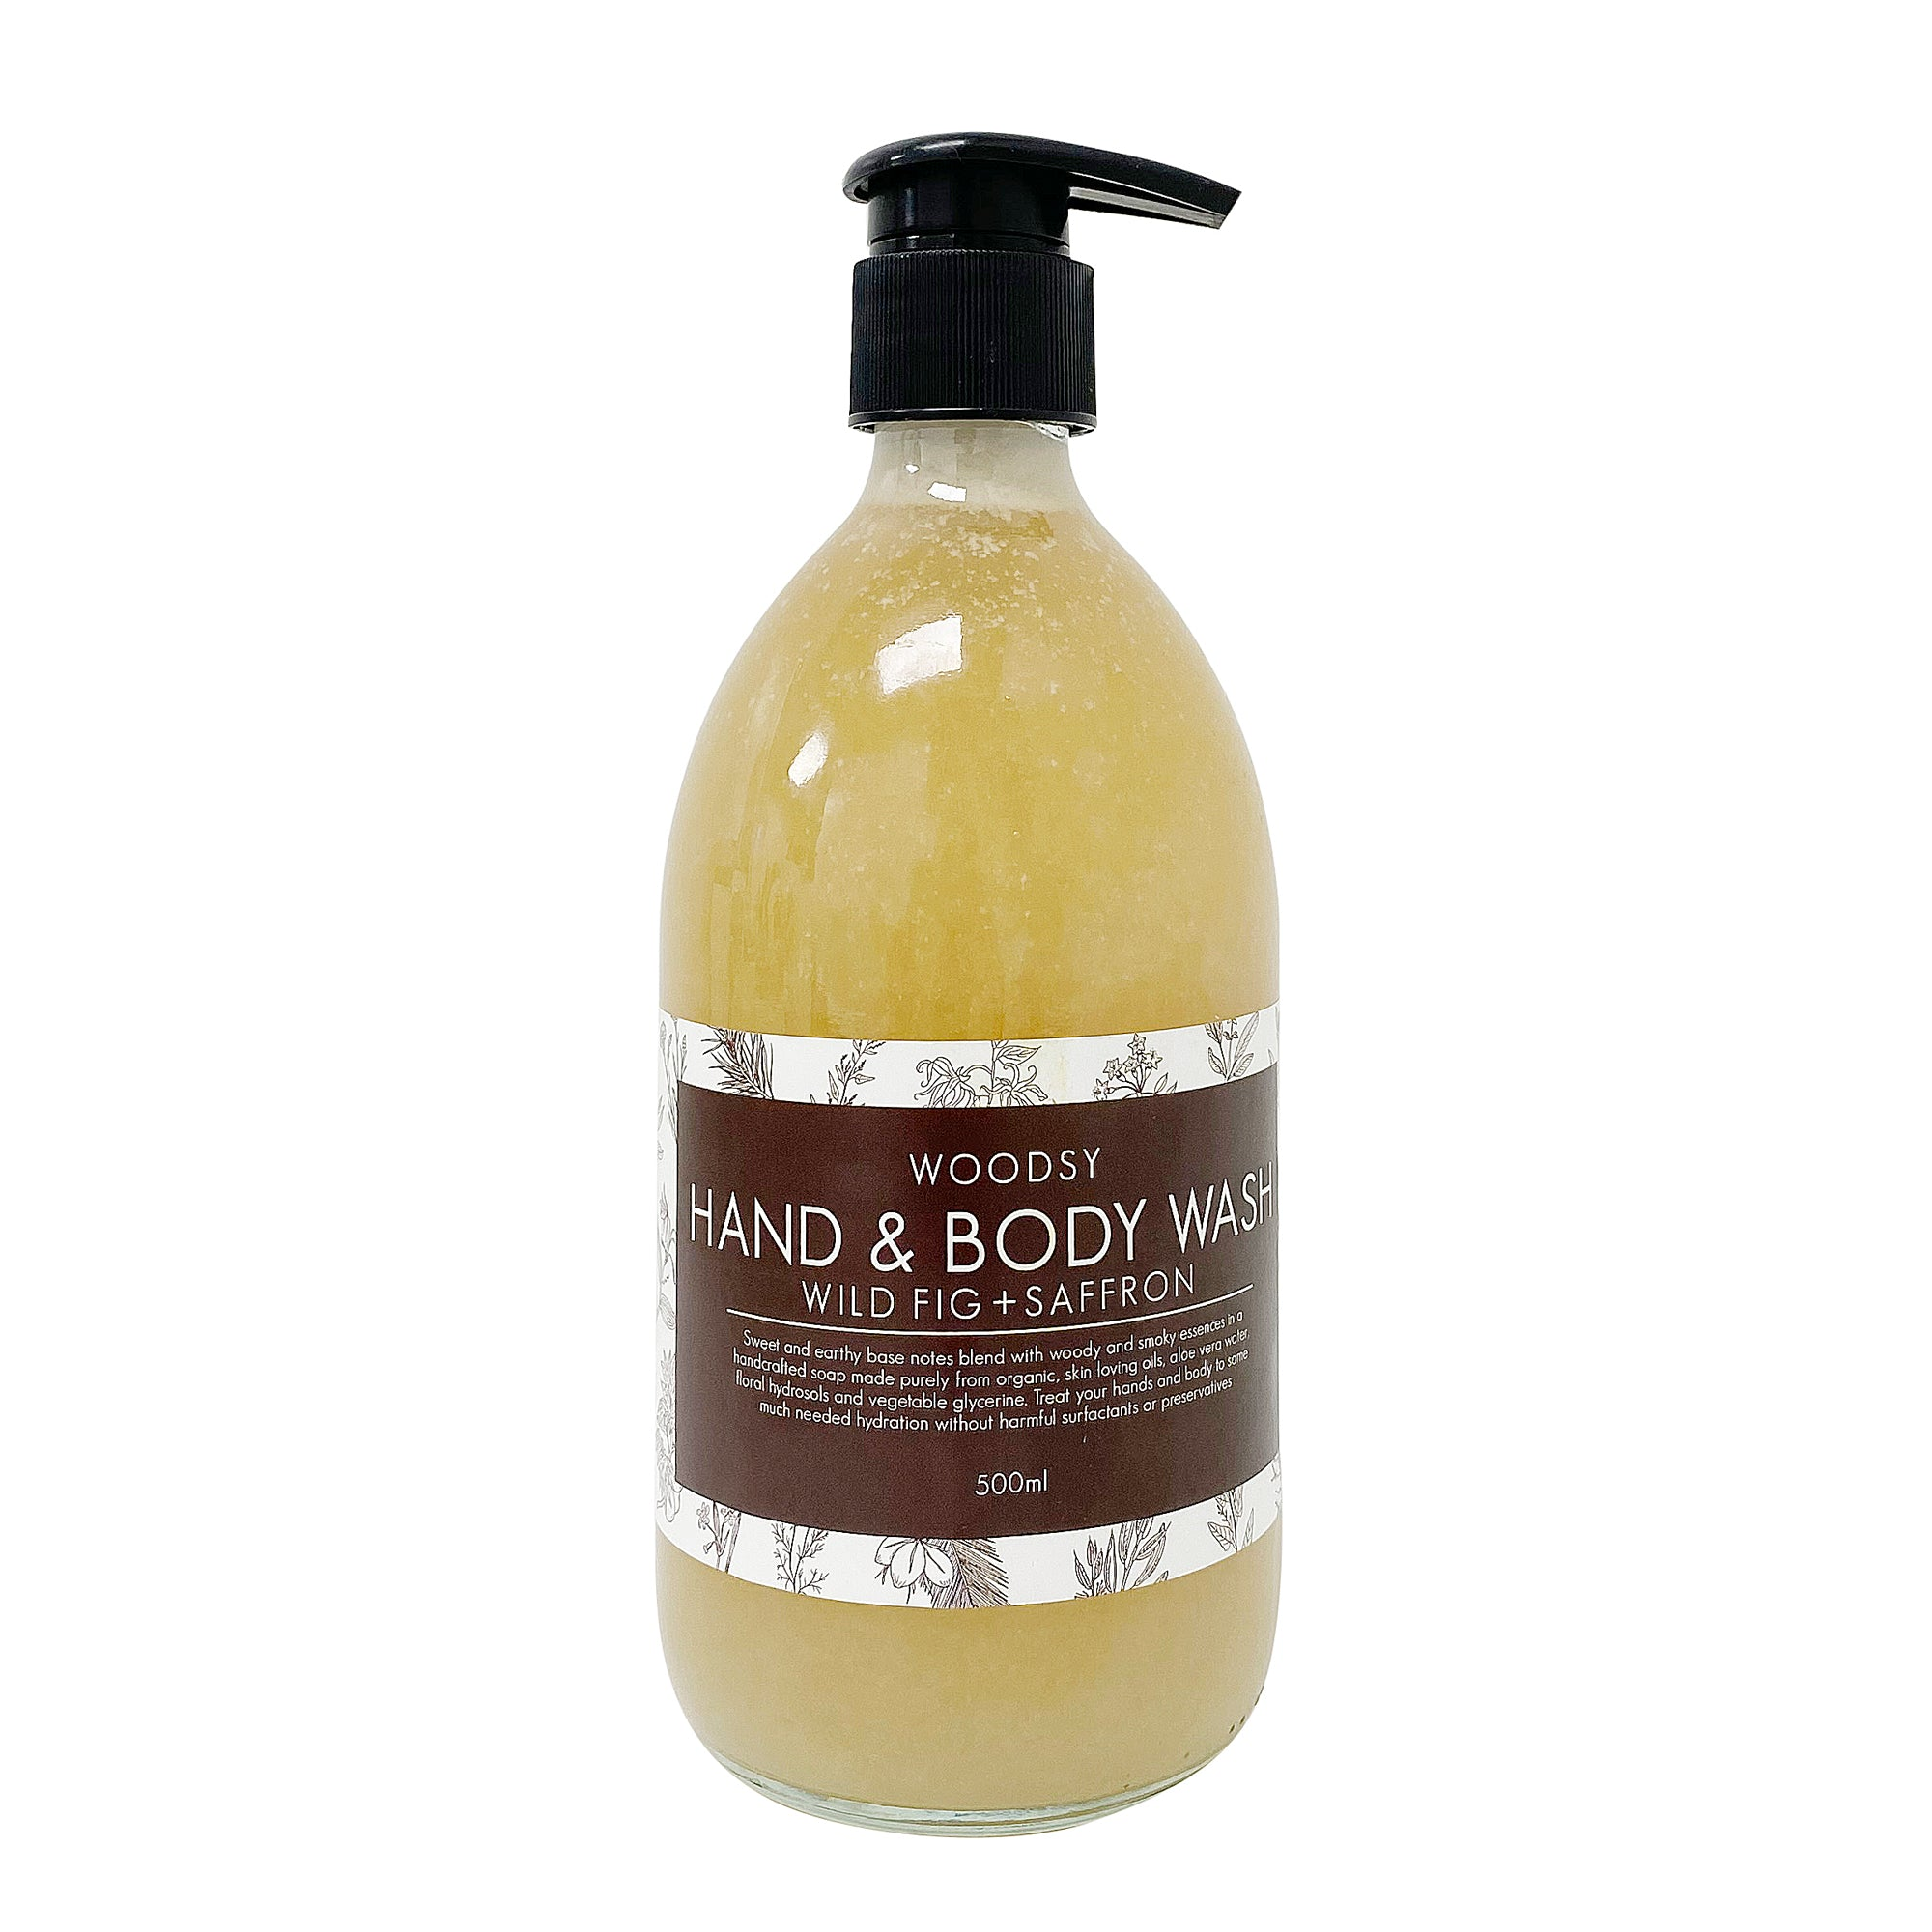 Hand & Body Wash - Wild Fig & Saffron - Paper Plane - Woodsy - Mt Maunganui Store